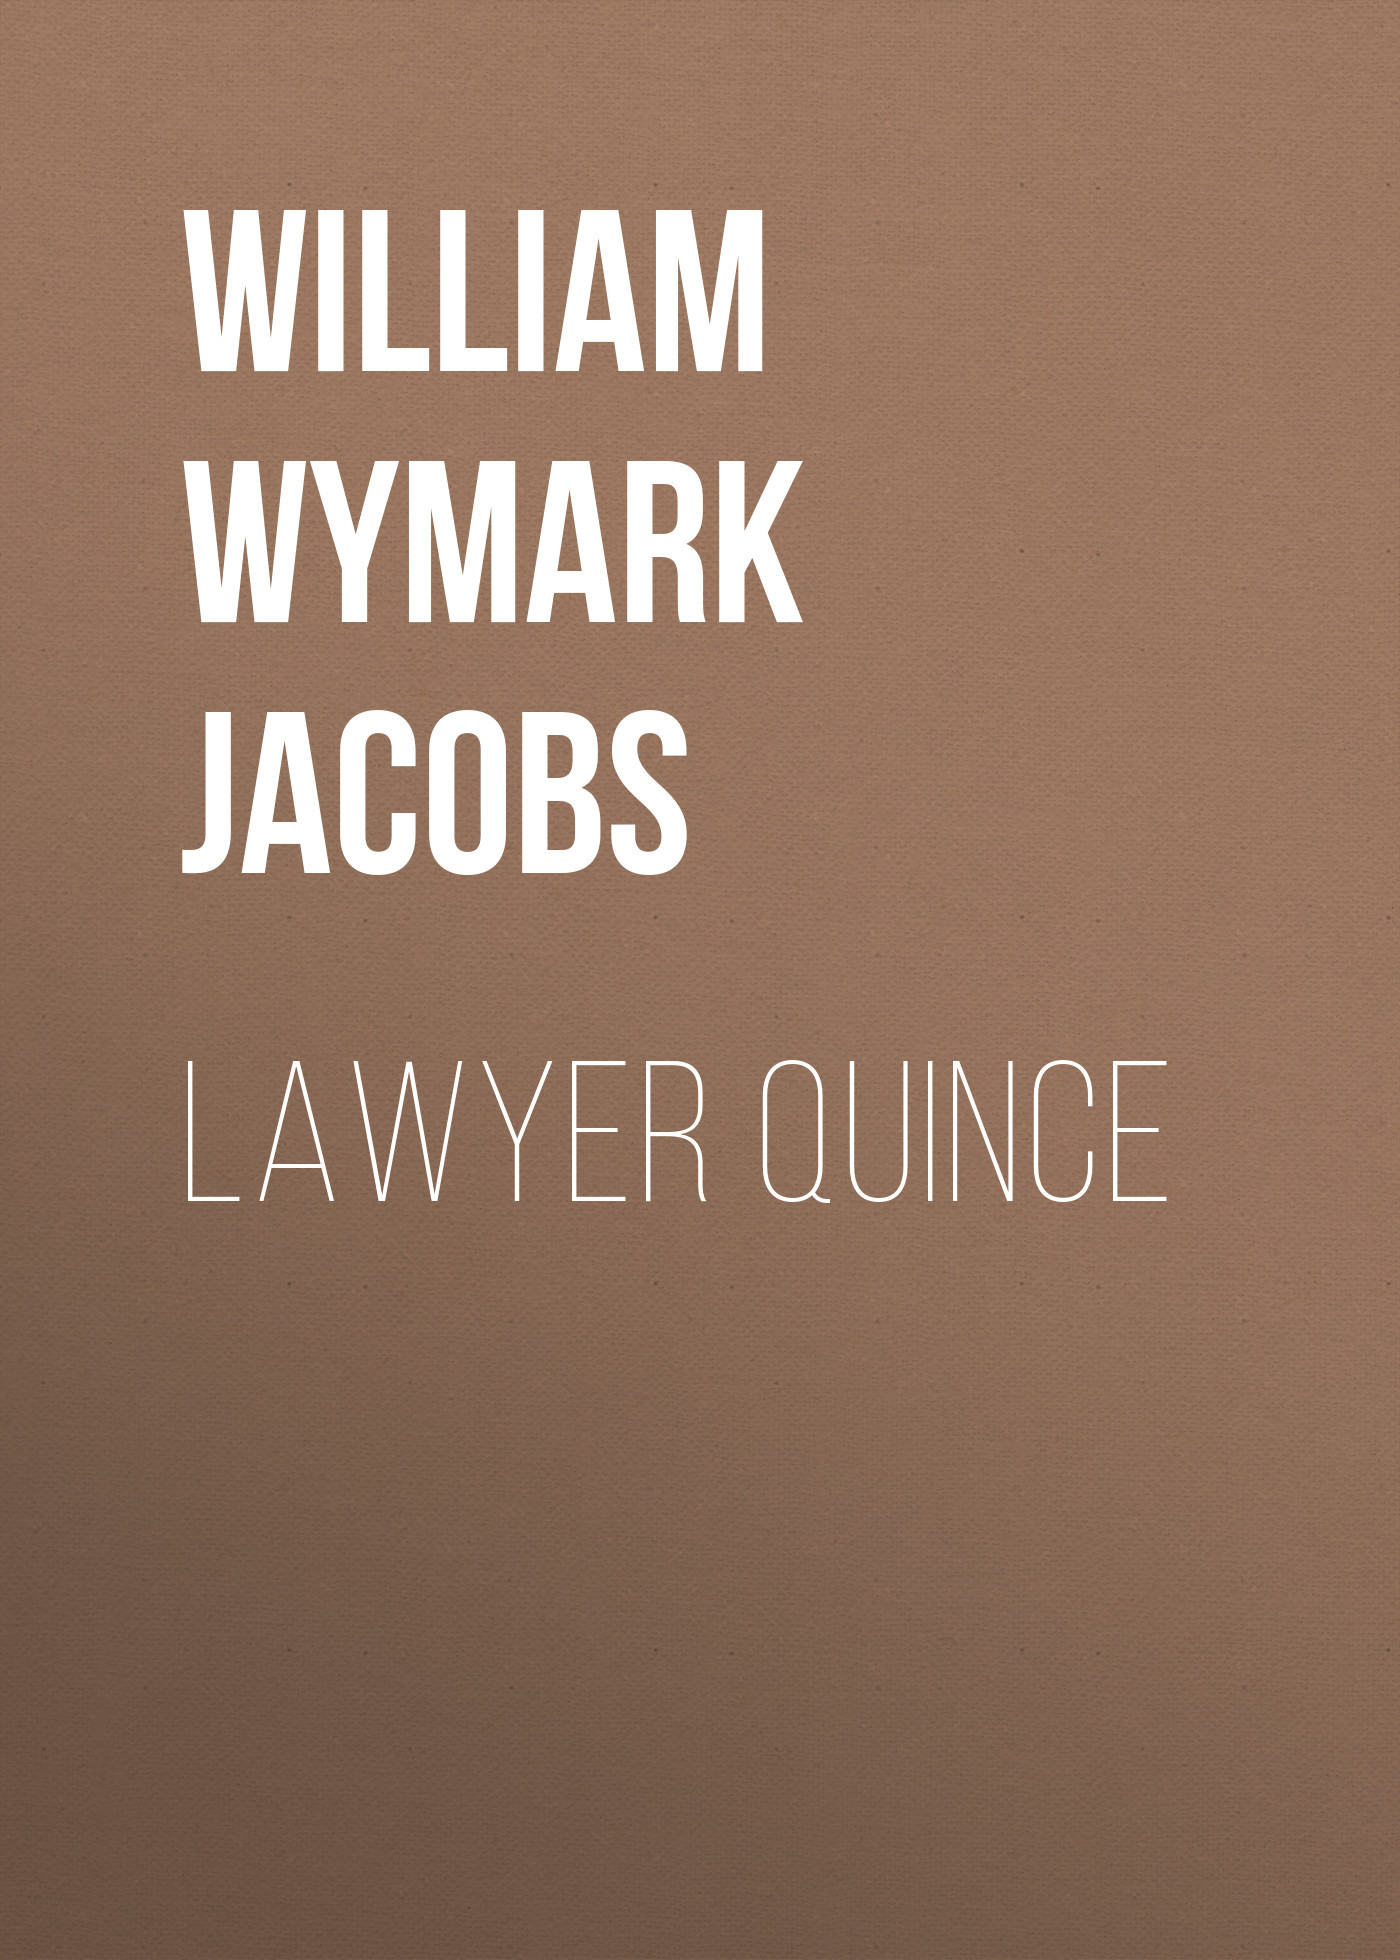 William Wymark Jacobs Lawyer Quince william wymark jacobs admiral peters